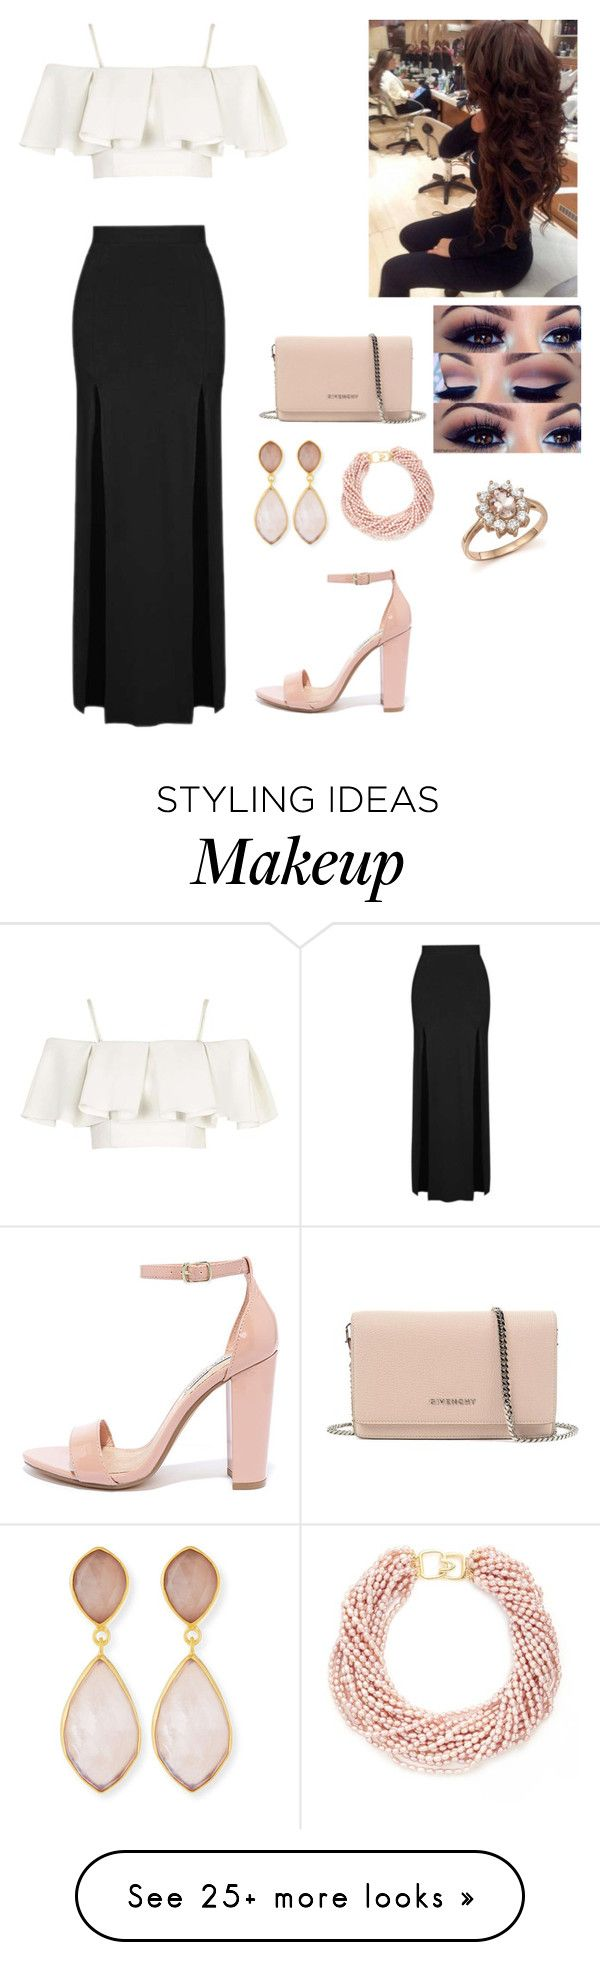 """Pageant meeting"" by mckenziestripling on Polyvore featuring Topshop, Steve Madden, Givenchy, Kenneth Jay Lane, Dina Mackney and Bloomingdale's"